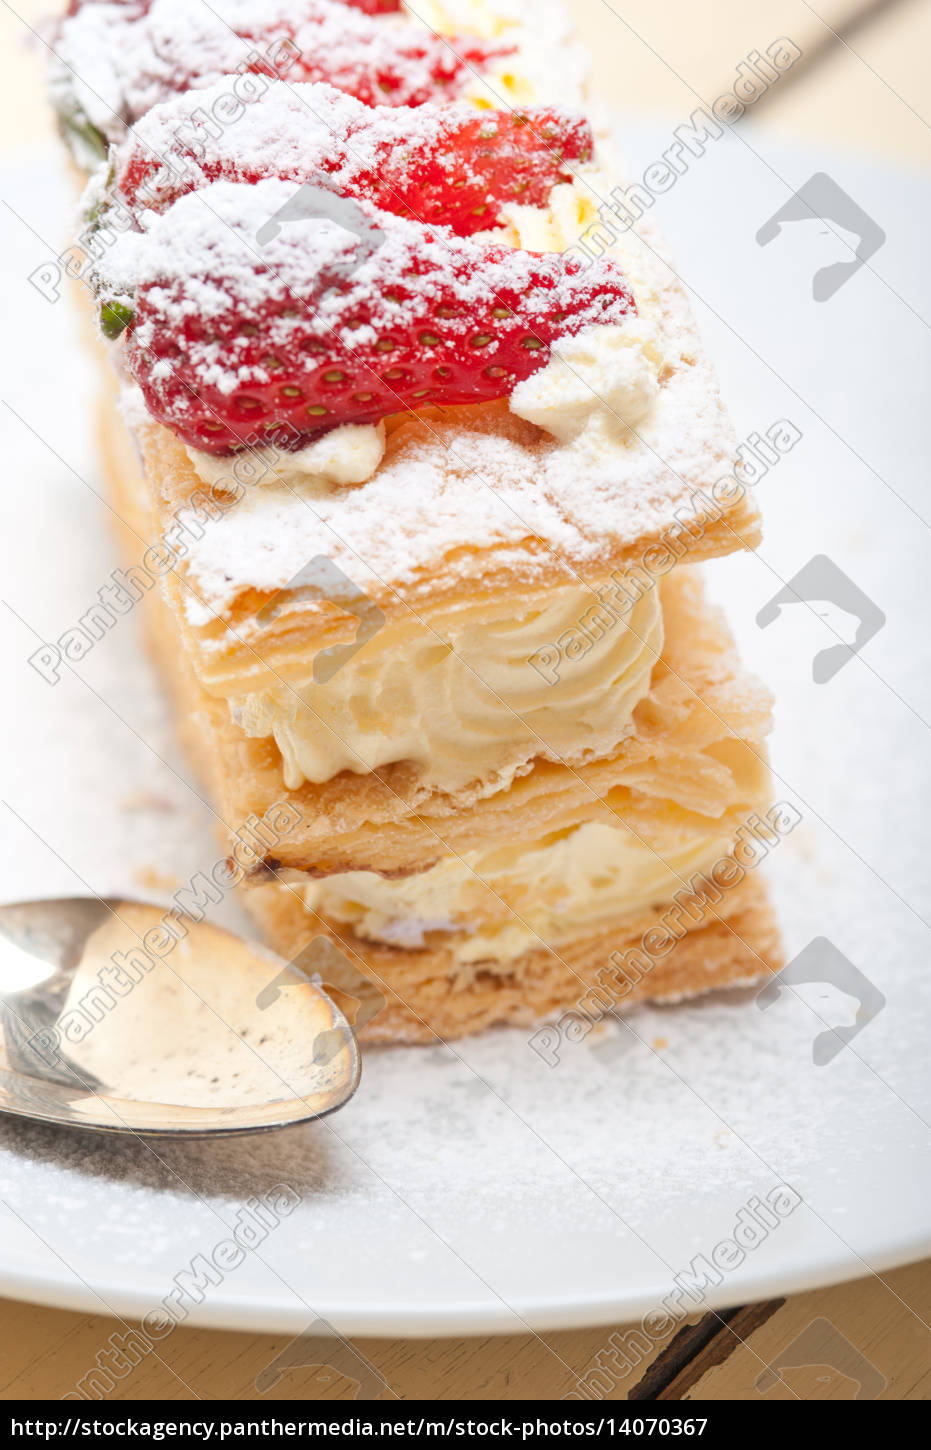 napoleon, strawberry, cake, dessert - 14070367